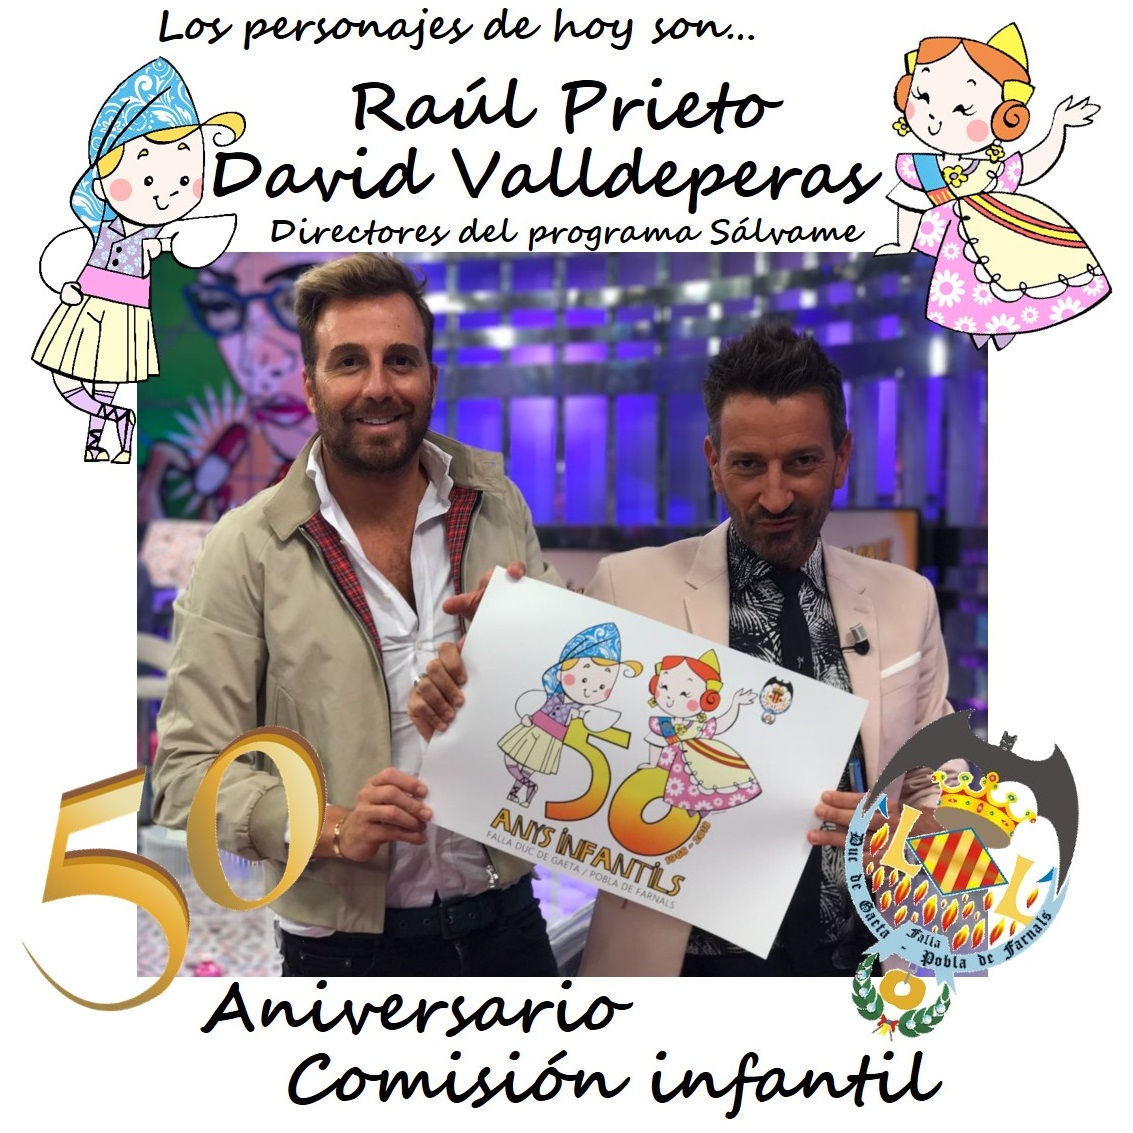 213-RAUL-PRIETO-DAVID-VALLDEPERAS.jpg